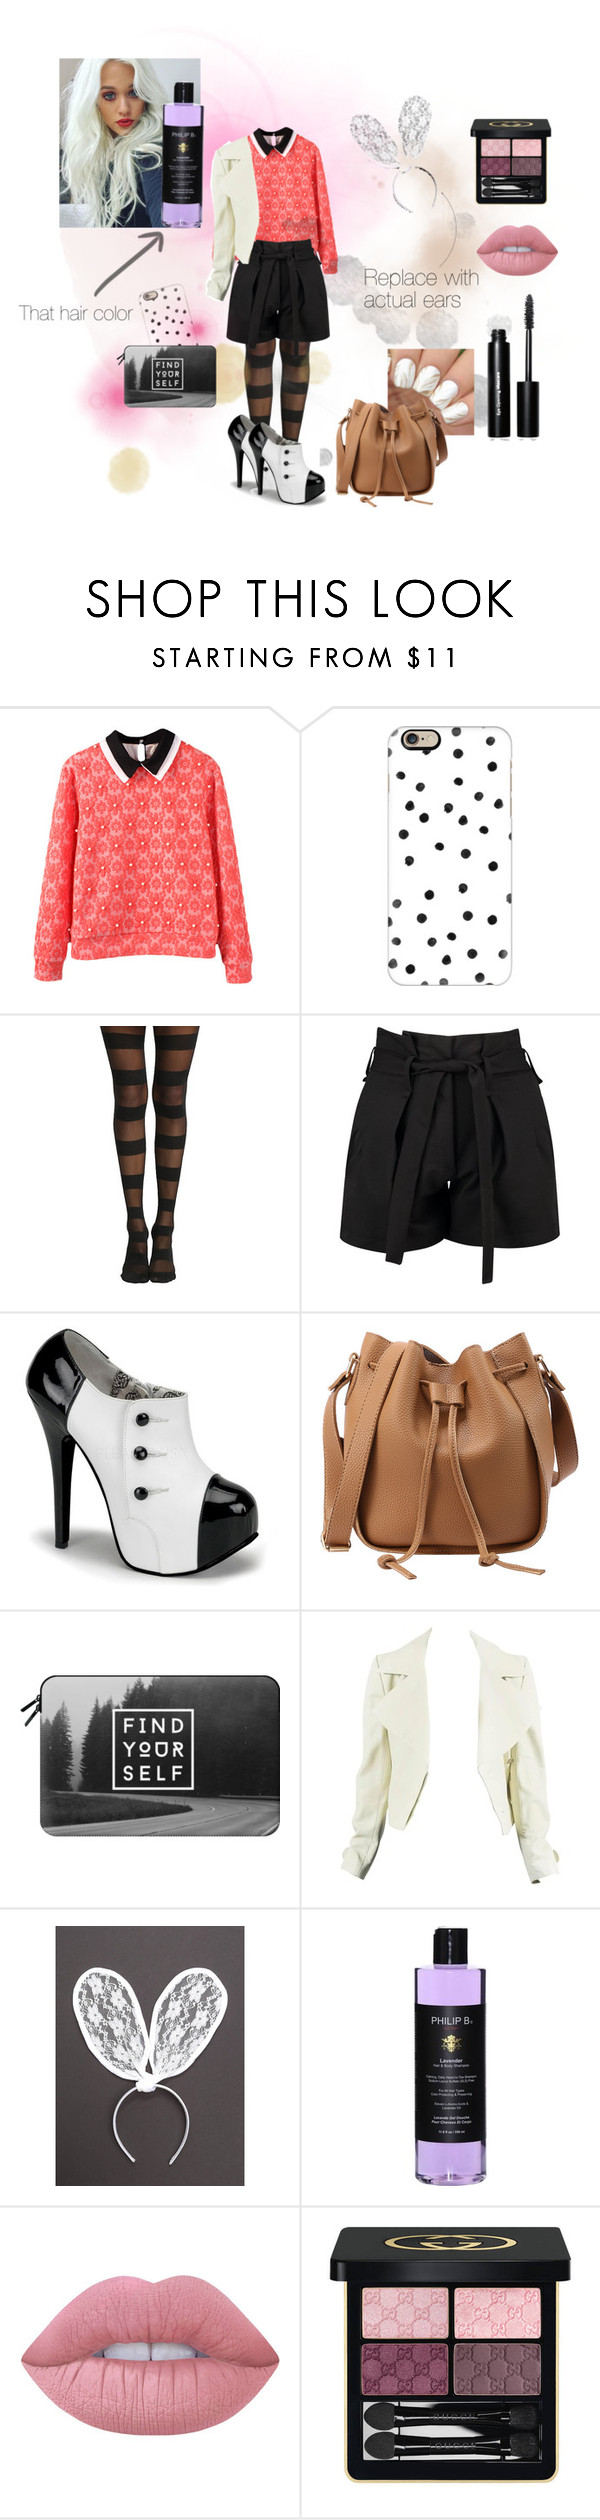 """Kat outfit from Wattpad story"" by micaj on Polyvore featuring Casetify, Boohoo, Philip B, Lime Crime, Gucci and Bobbi Brown Cosmetics"